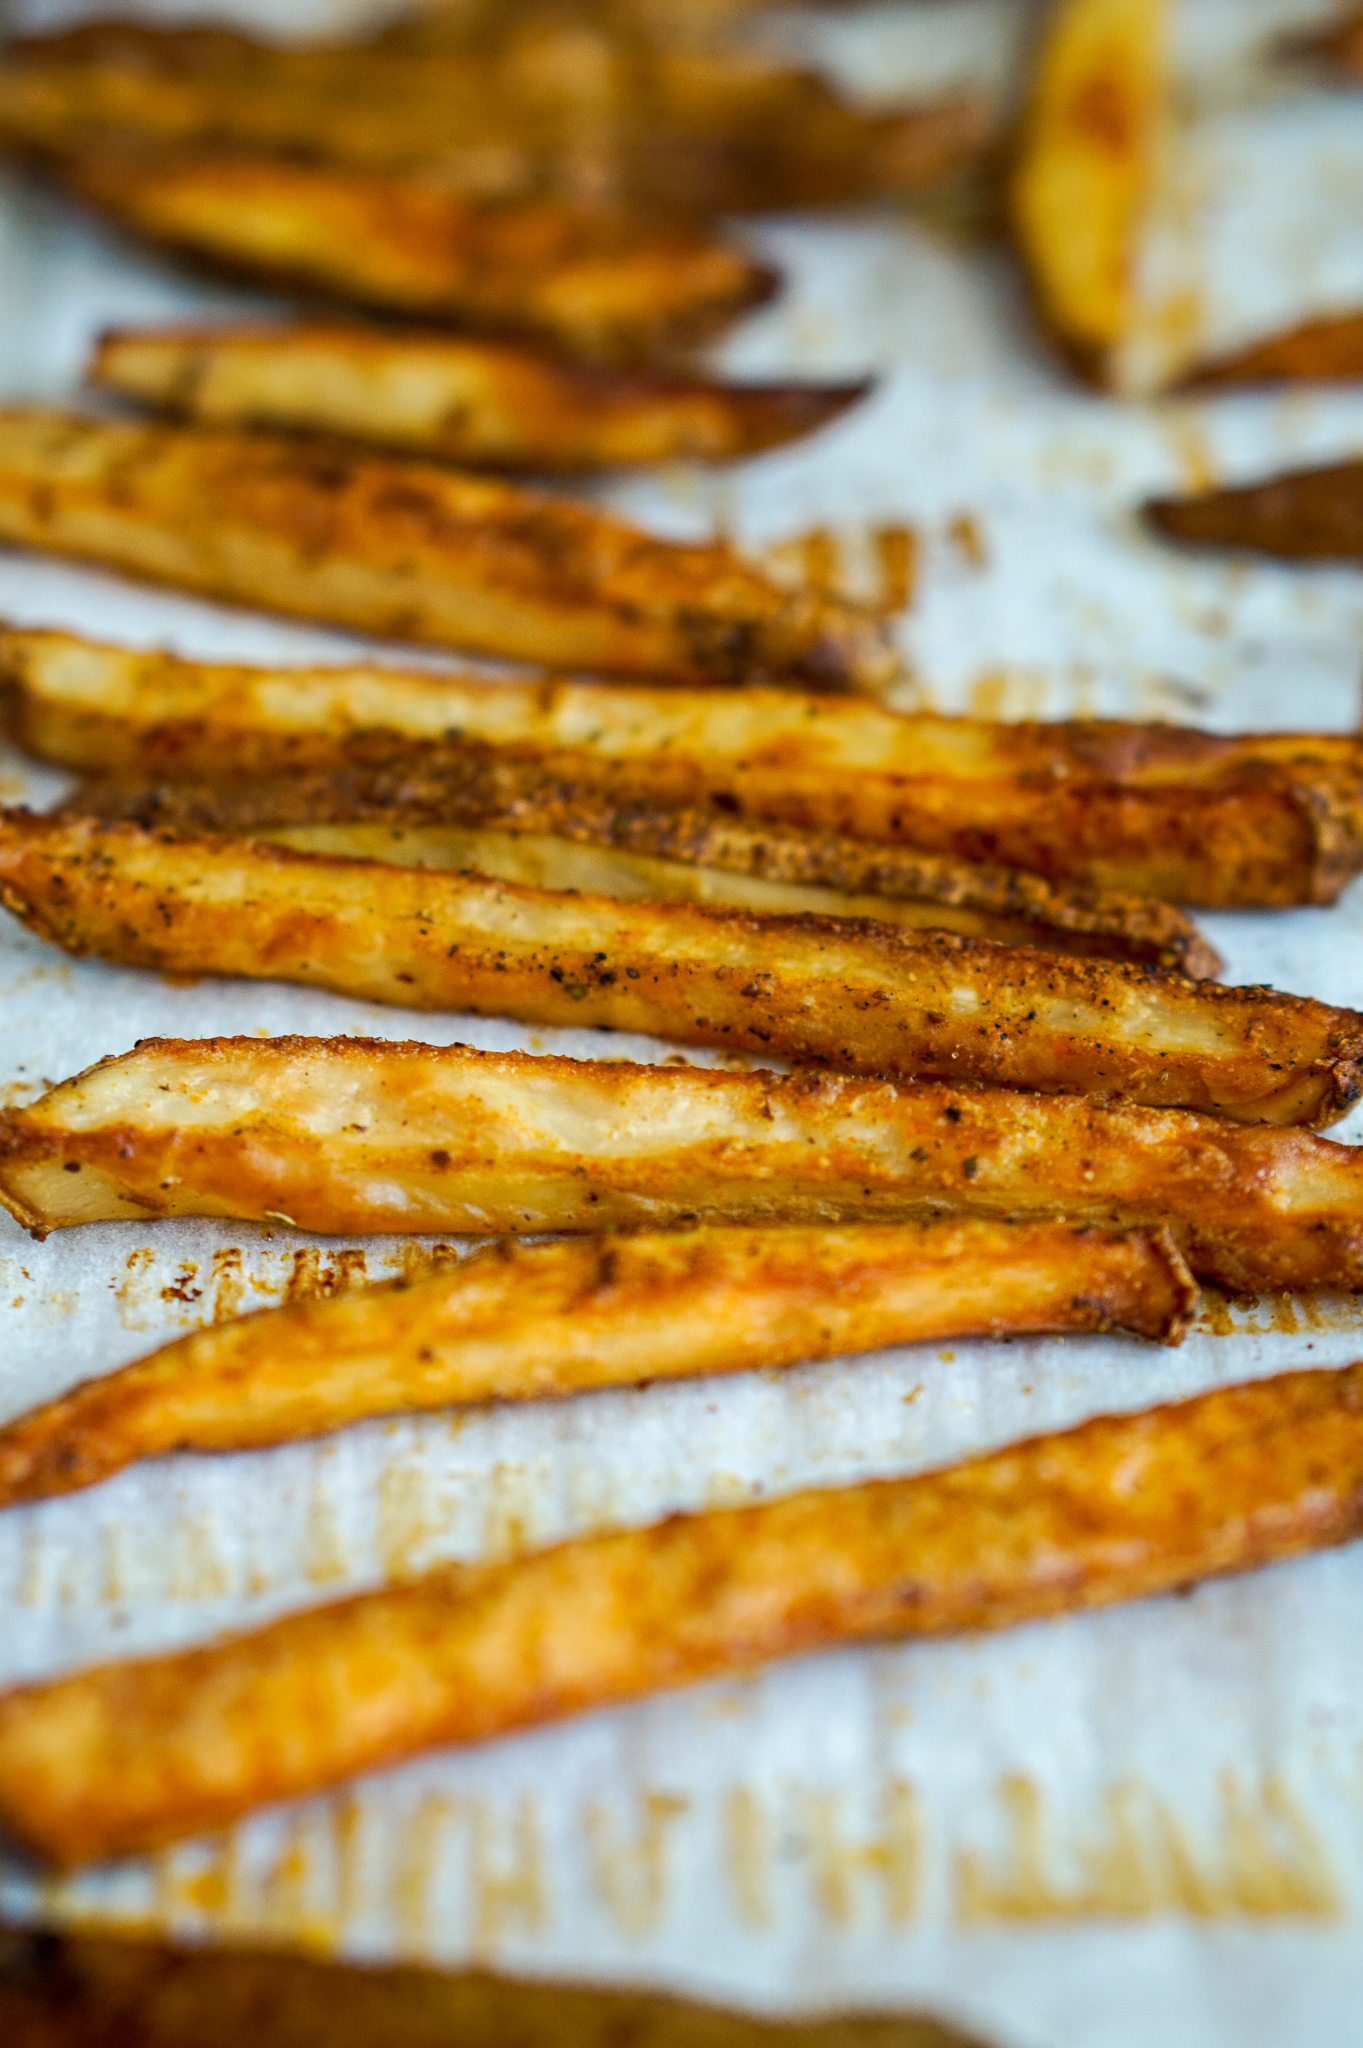 OLD BAY Seasoned French Fries